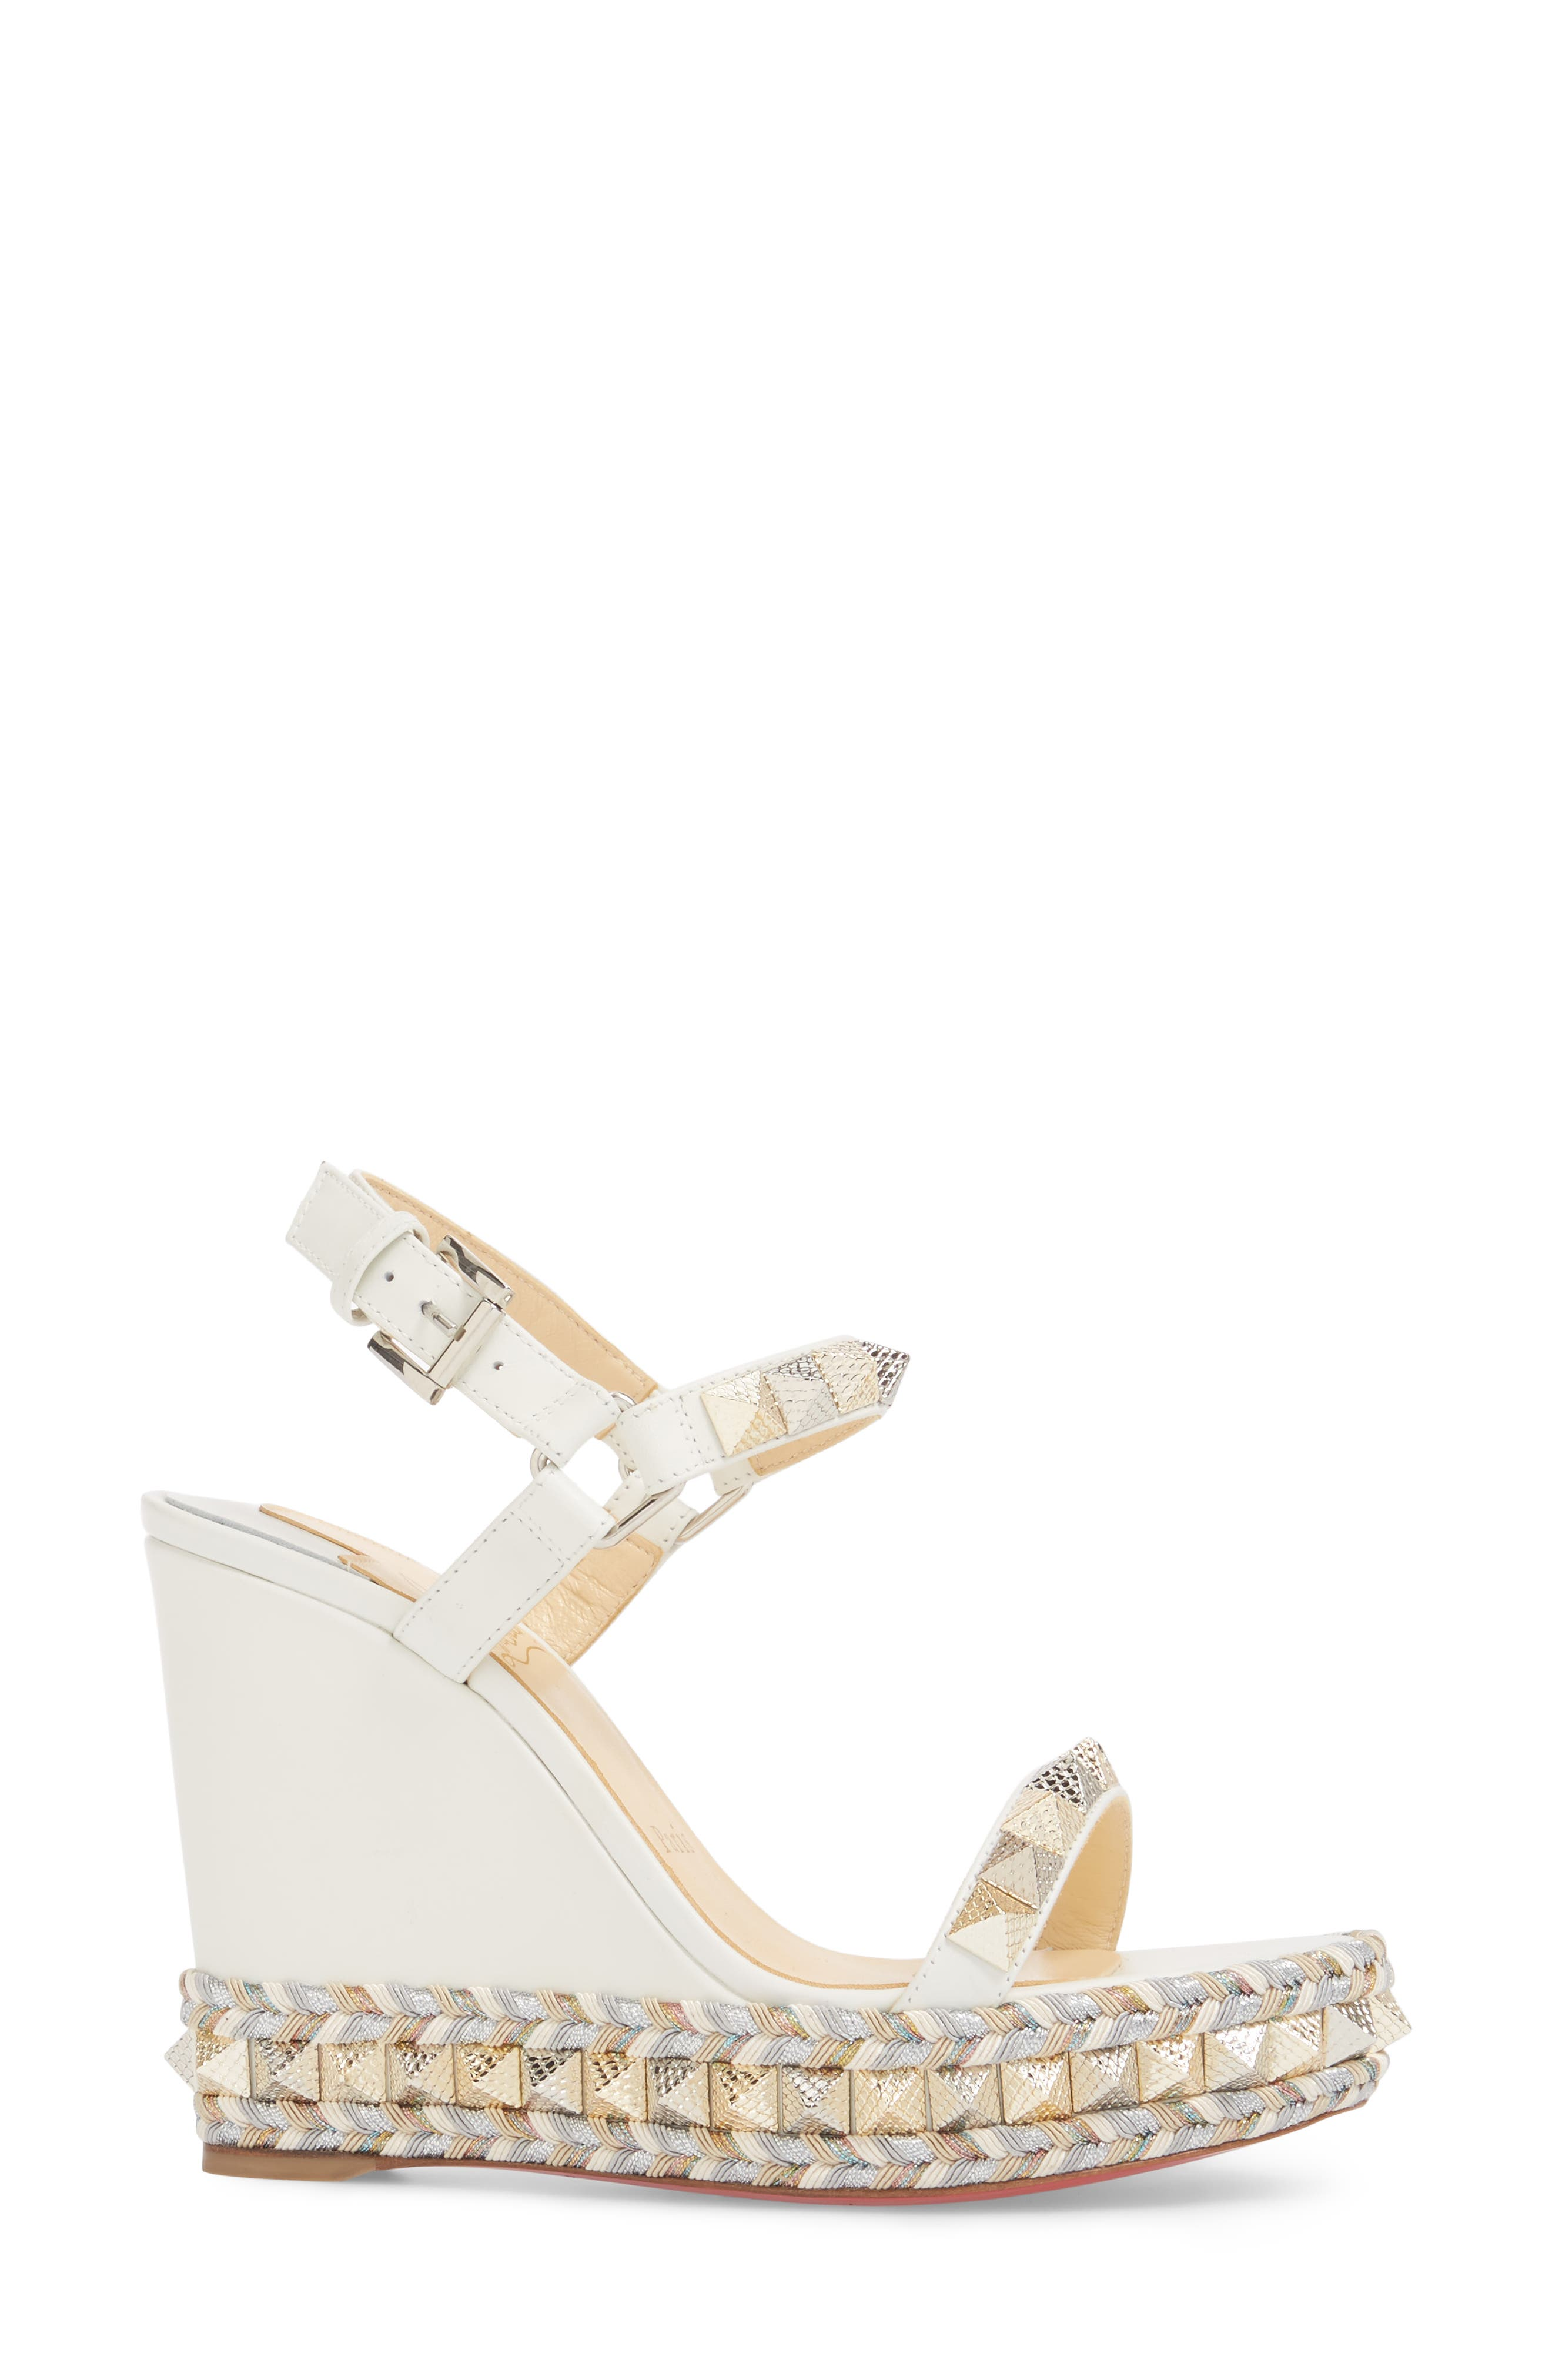 Pyraclou Wedge Sandal,                             Alternate thumbnail 3, color,                             LATTE WHITE